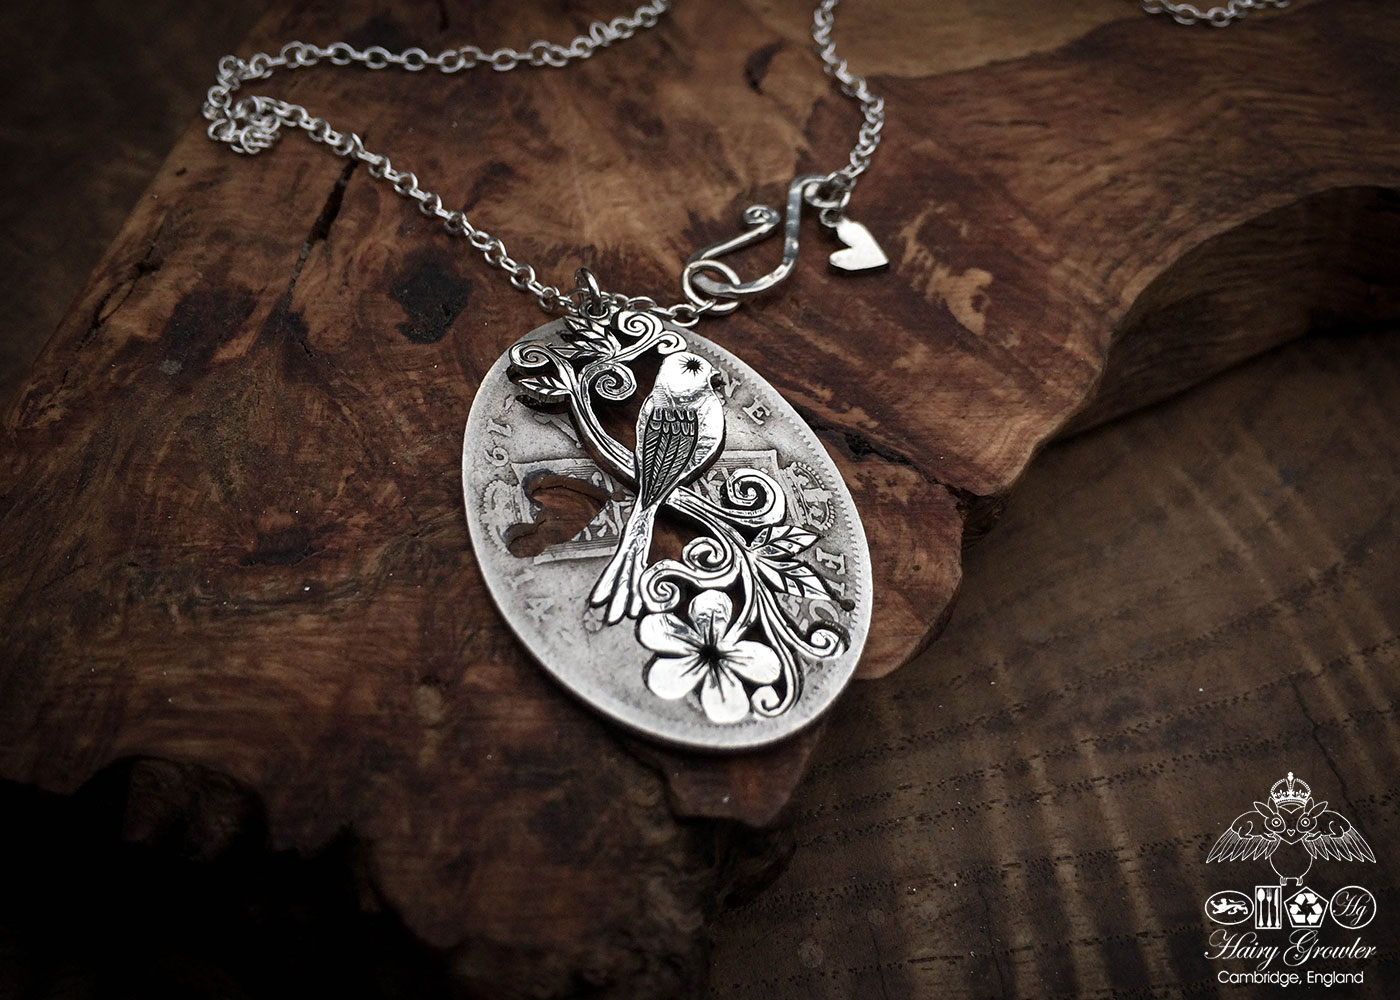 bestival festival necklace - handmade and recycled using silver coins